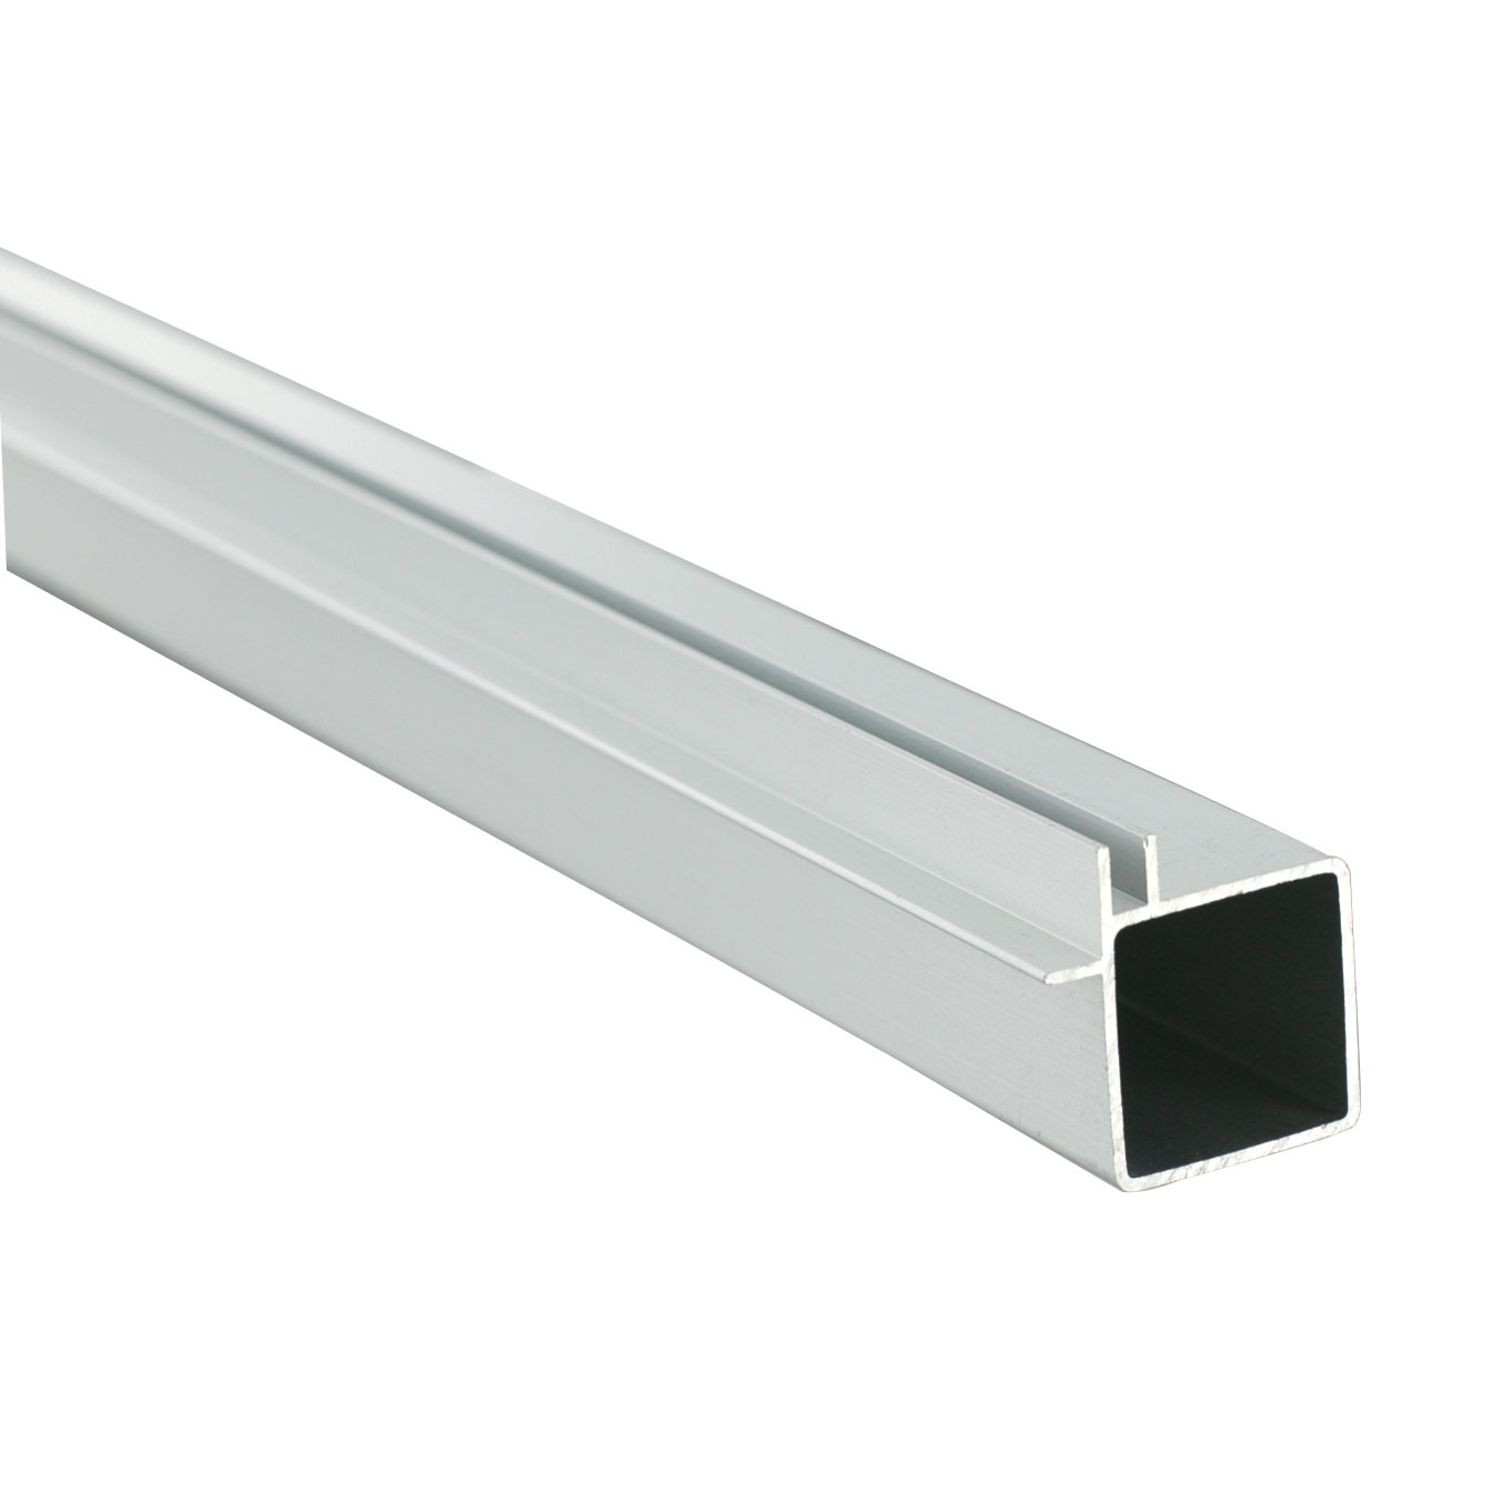 "1"" Square Flange Clear Anodized Single Channel Aluminum Tubing for 1/8"" Panel 8' Length"